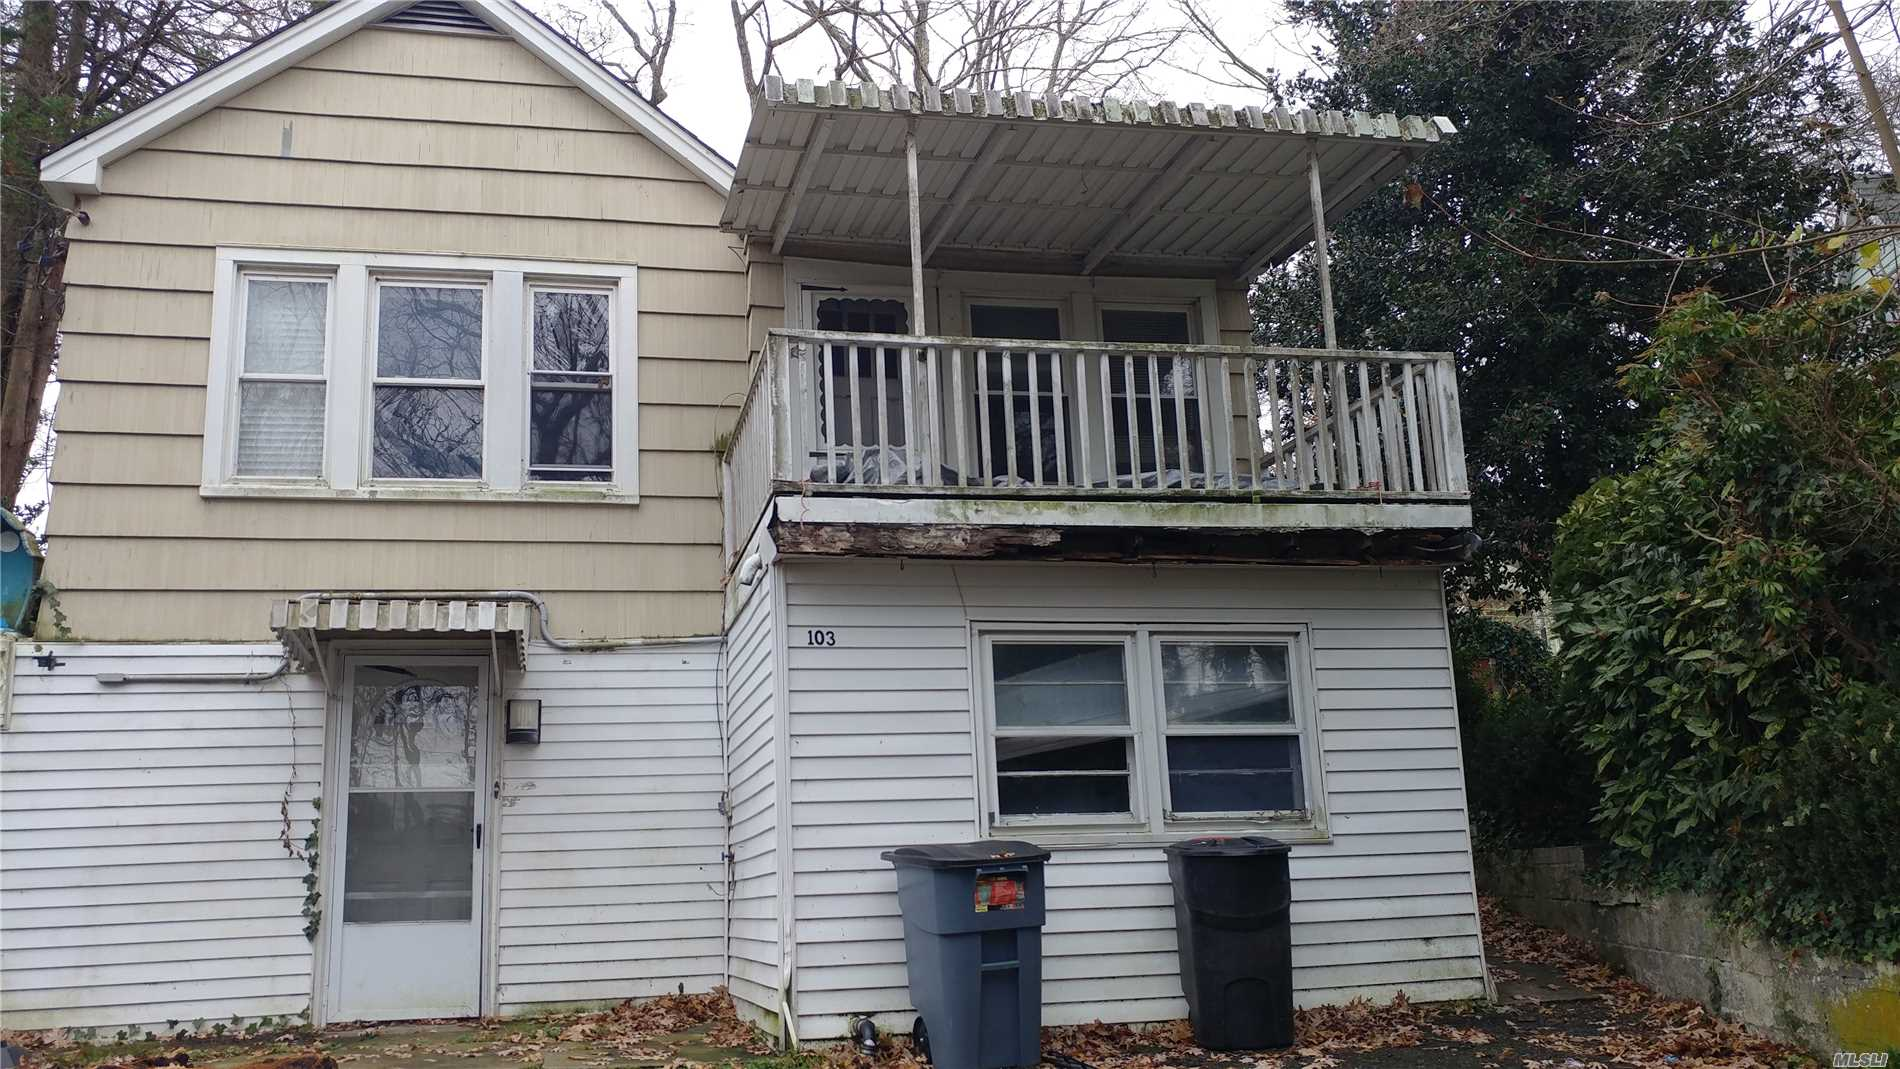 2 Story, 3 Bedroom, 2 Bath, Walking Distance To The Beach. Great Opportunity For Investors.